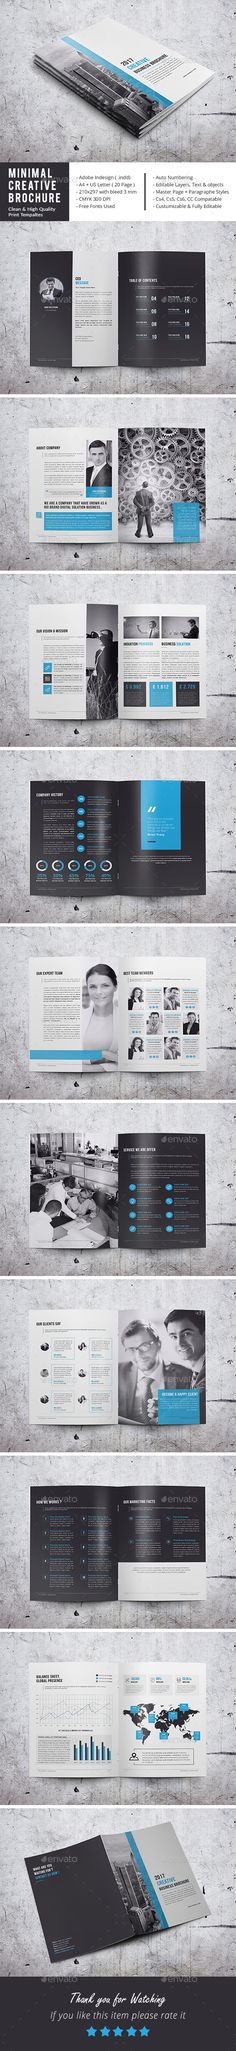 Minimal Corporate Brochure - Corporate #Brochures Download here: https://graphicriver.net/item/minimal-corporate-brochure/19608126?ref=alena994